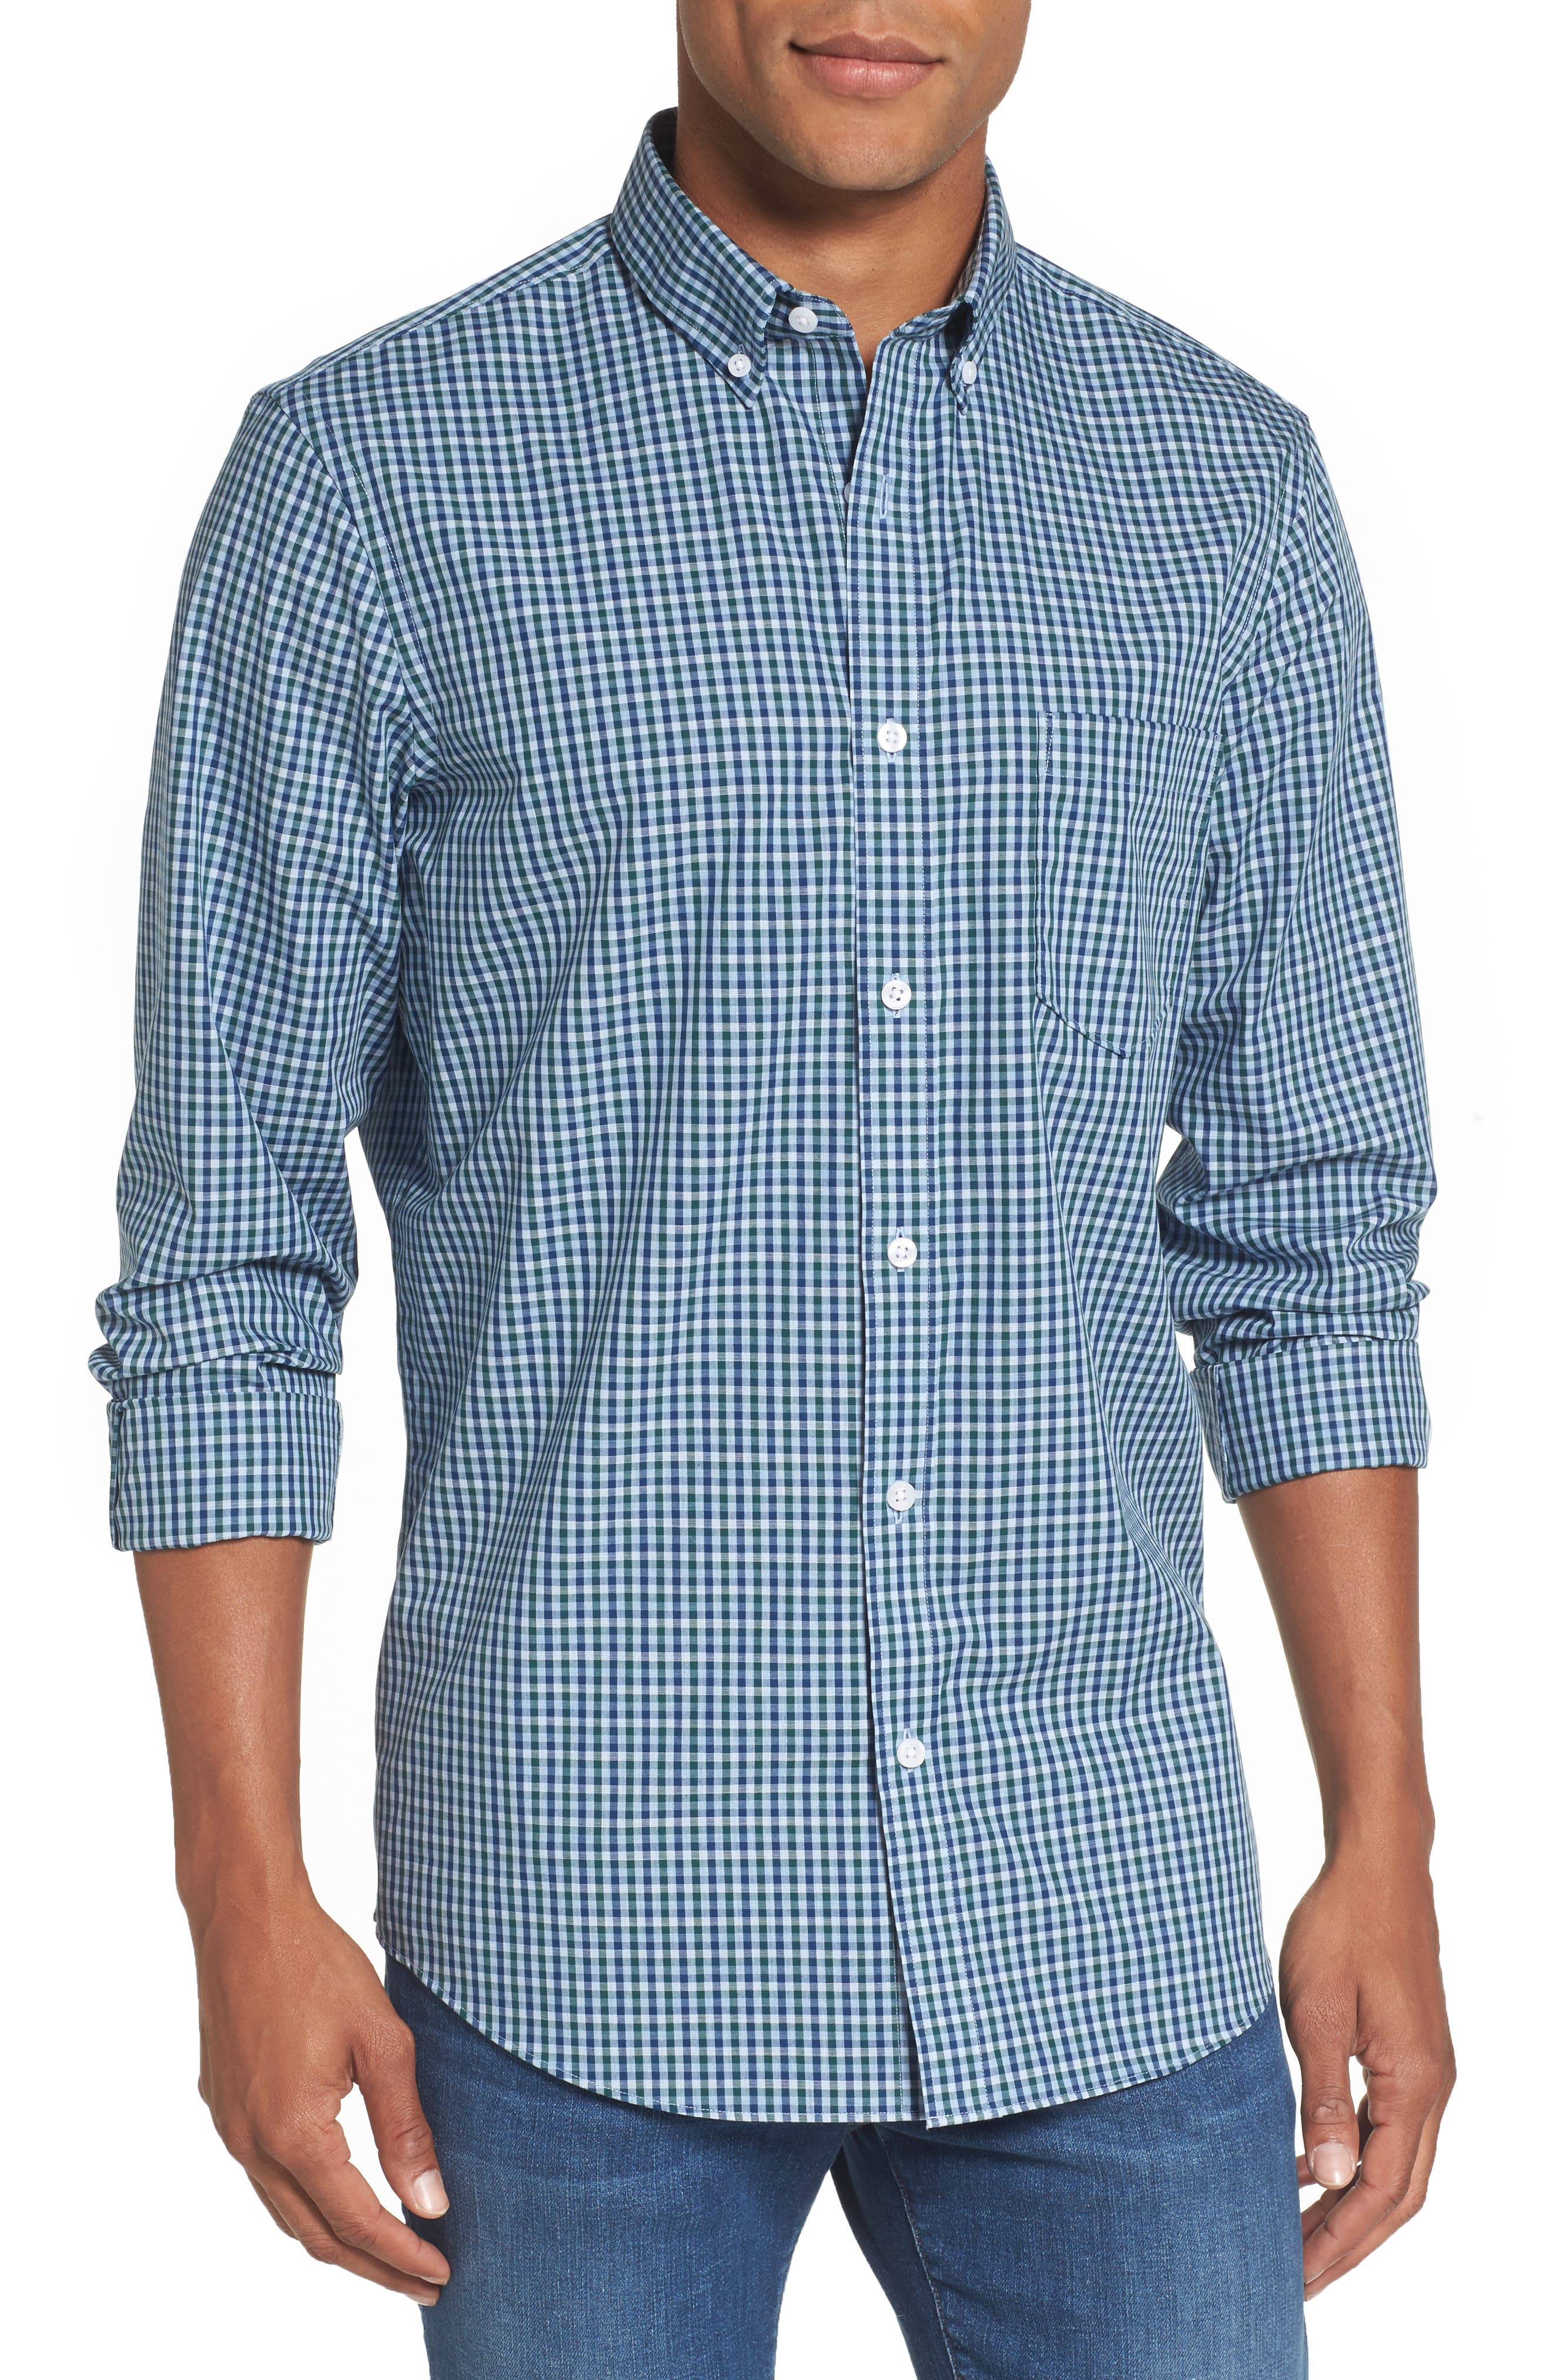 Alternate Image 1 Selected - Nordstrom Men's Shop Non-Iron Check Sport Shirt